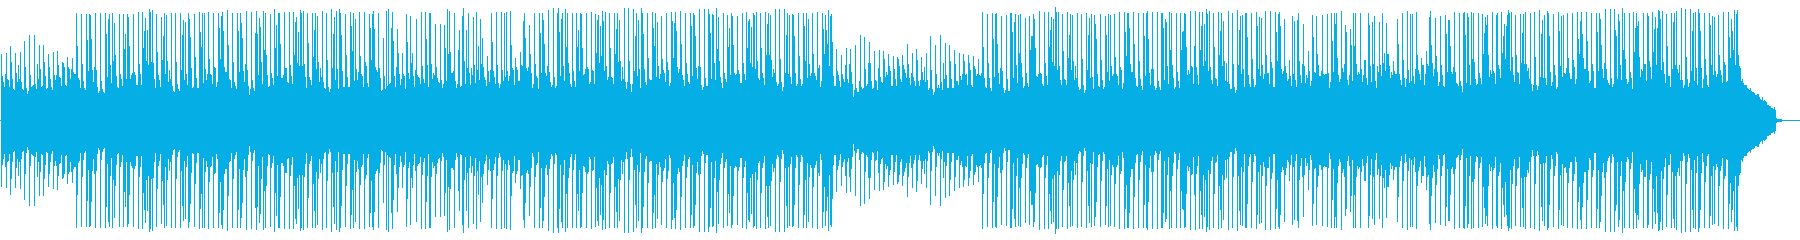 [Without percussion] Agriculture, fields, and heartwarming BGM's reproduced waveform